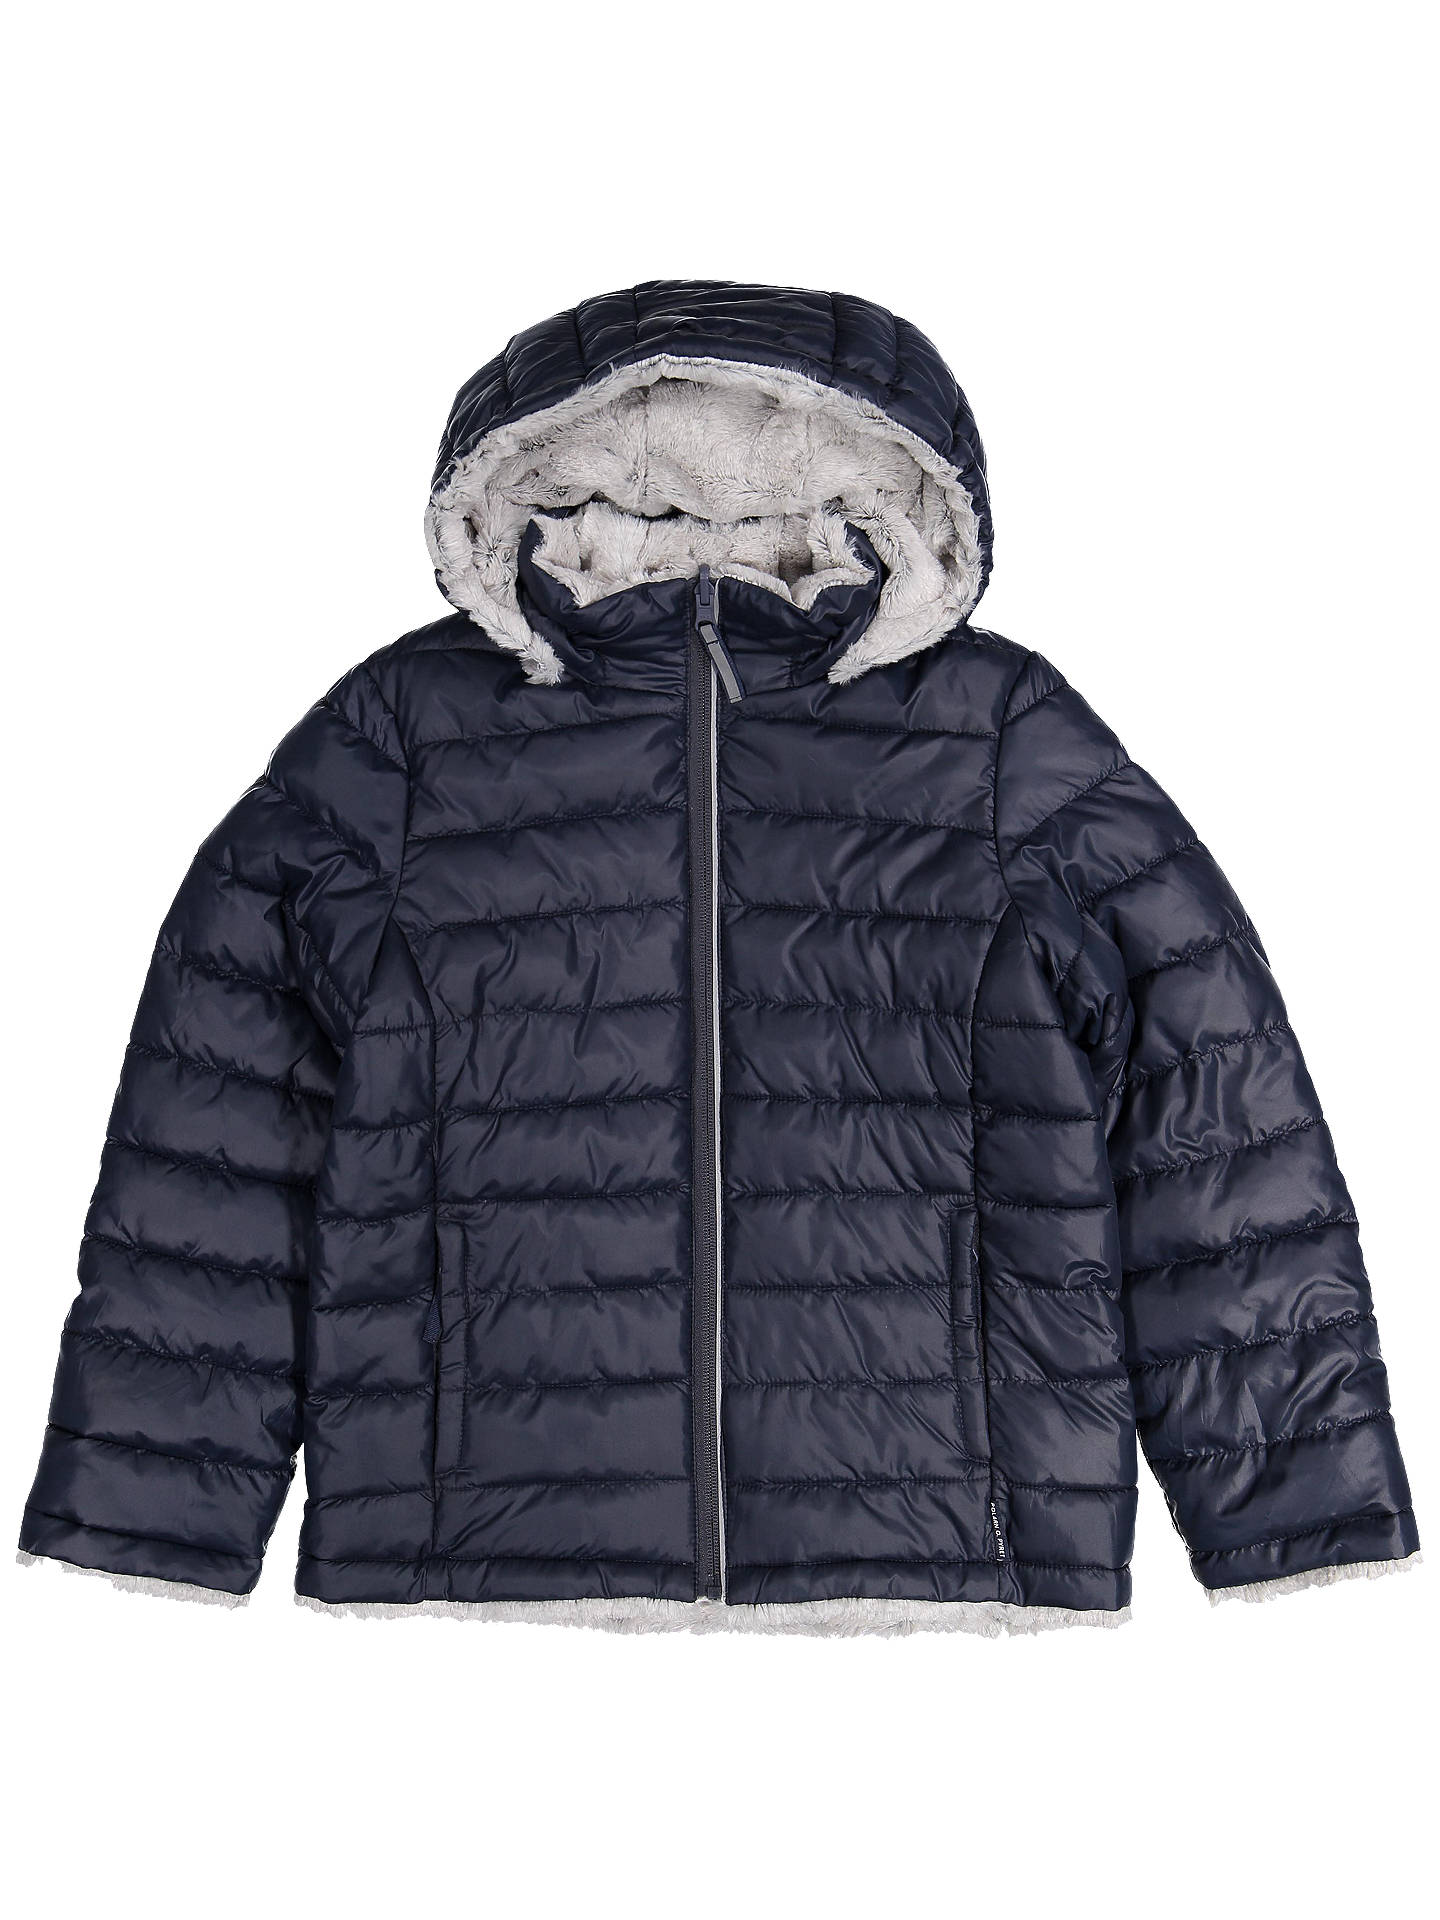 82ecb471c Polarn O. Pyret Children s Reversible Puffer Jacket